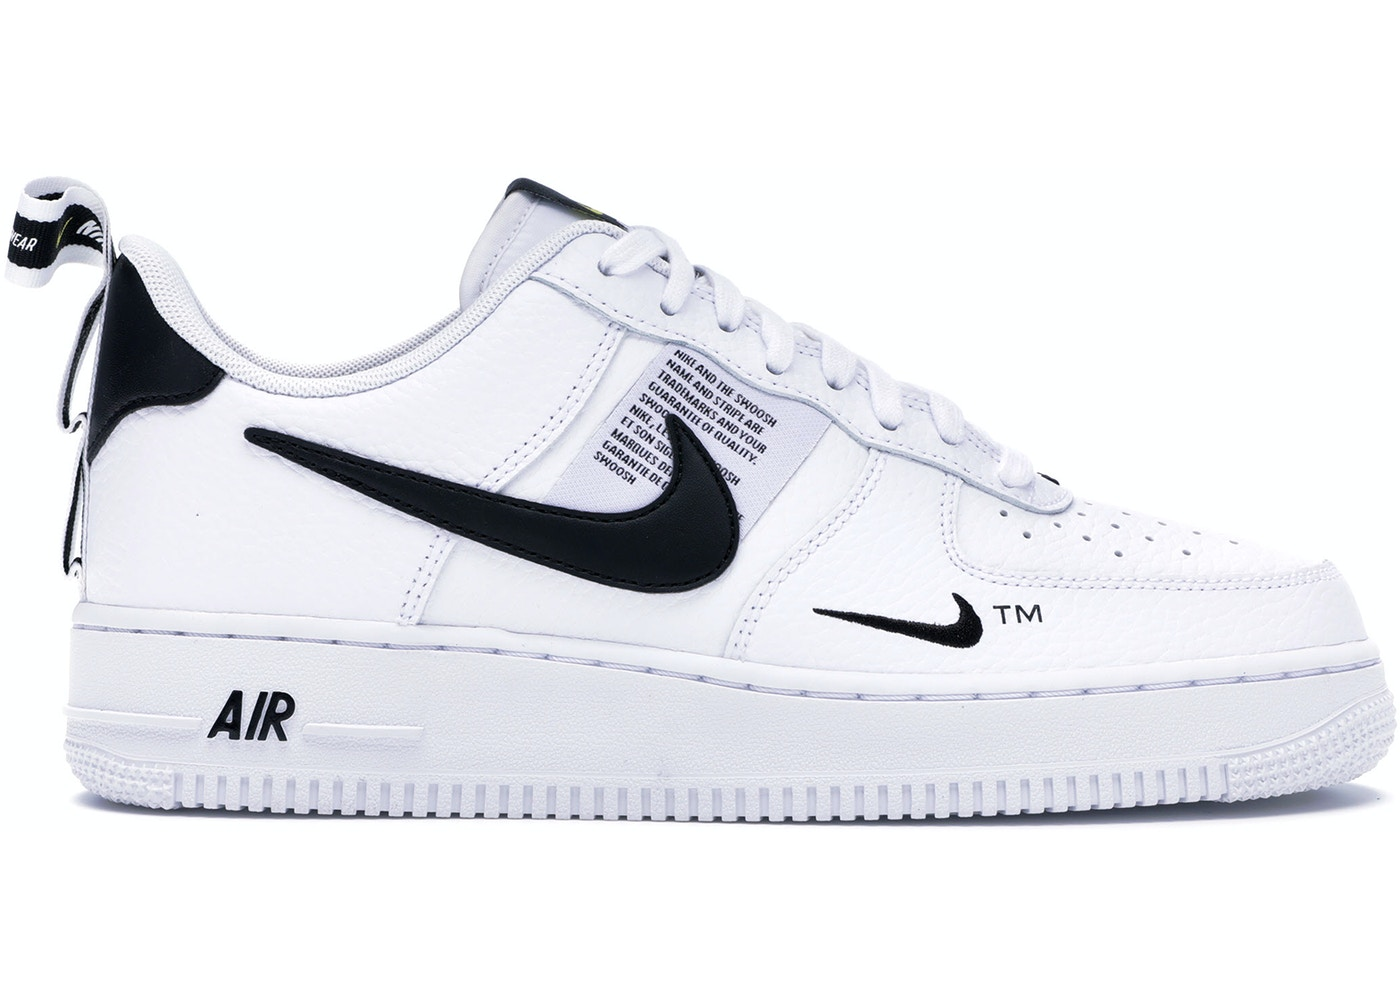 timeless design 57bcd 6ea0e Buy Nike Air Force 1 Shoes   Deadstock Sneakers